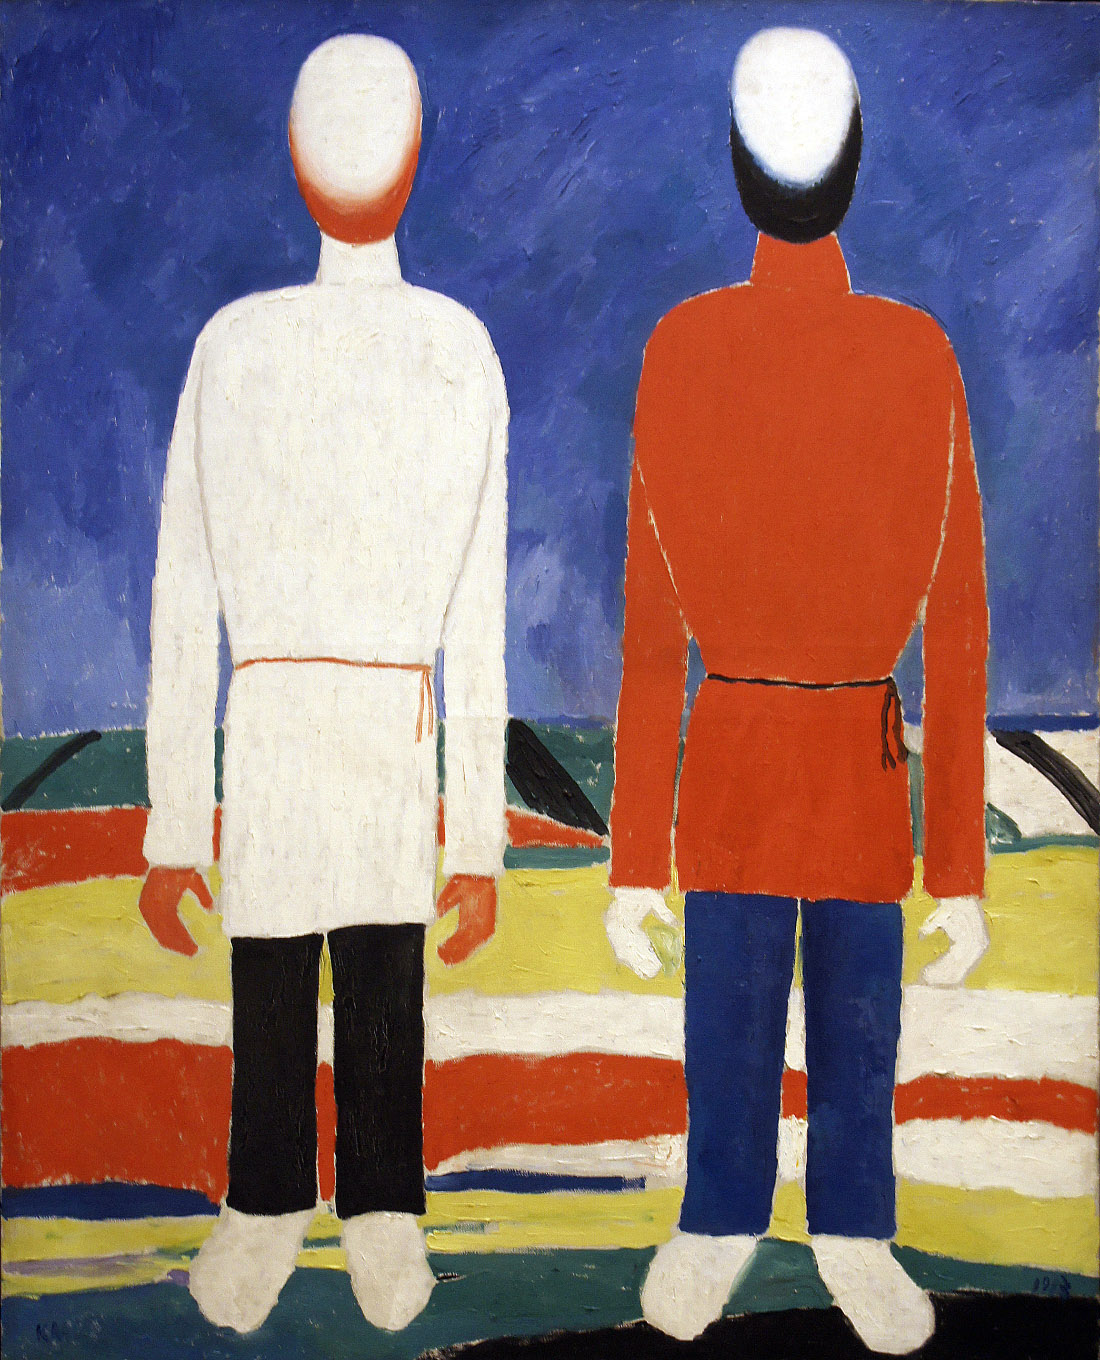 Two Male Figures, early 1930s, oil on canvas